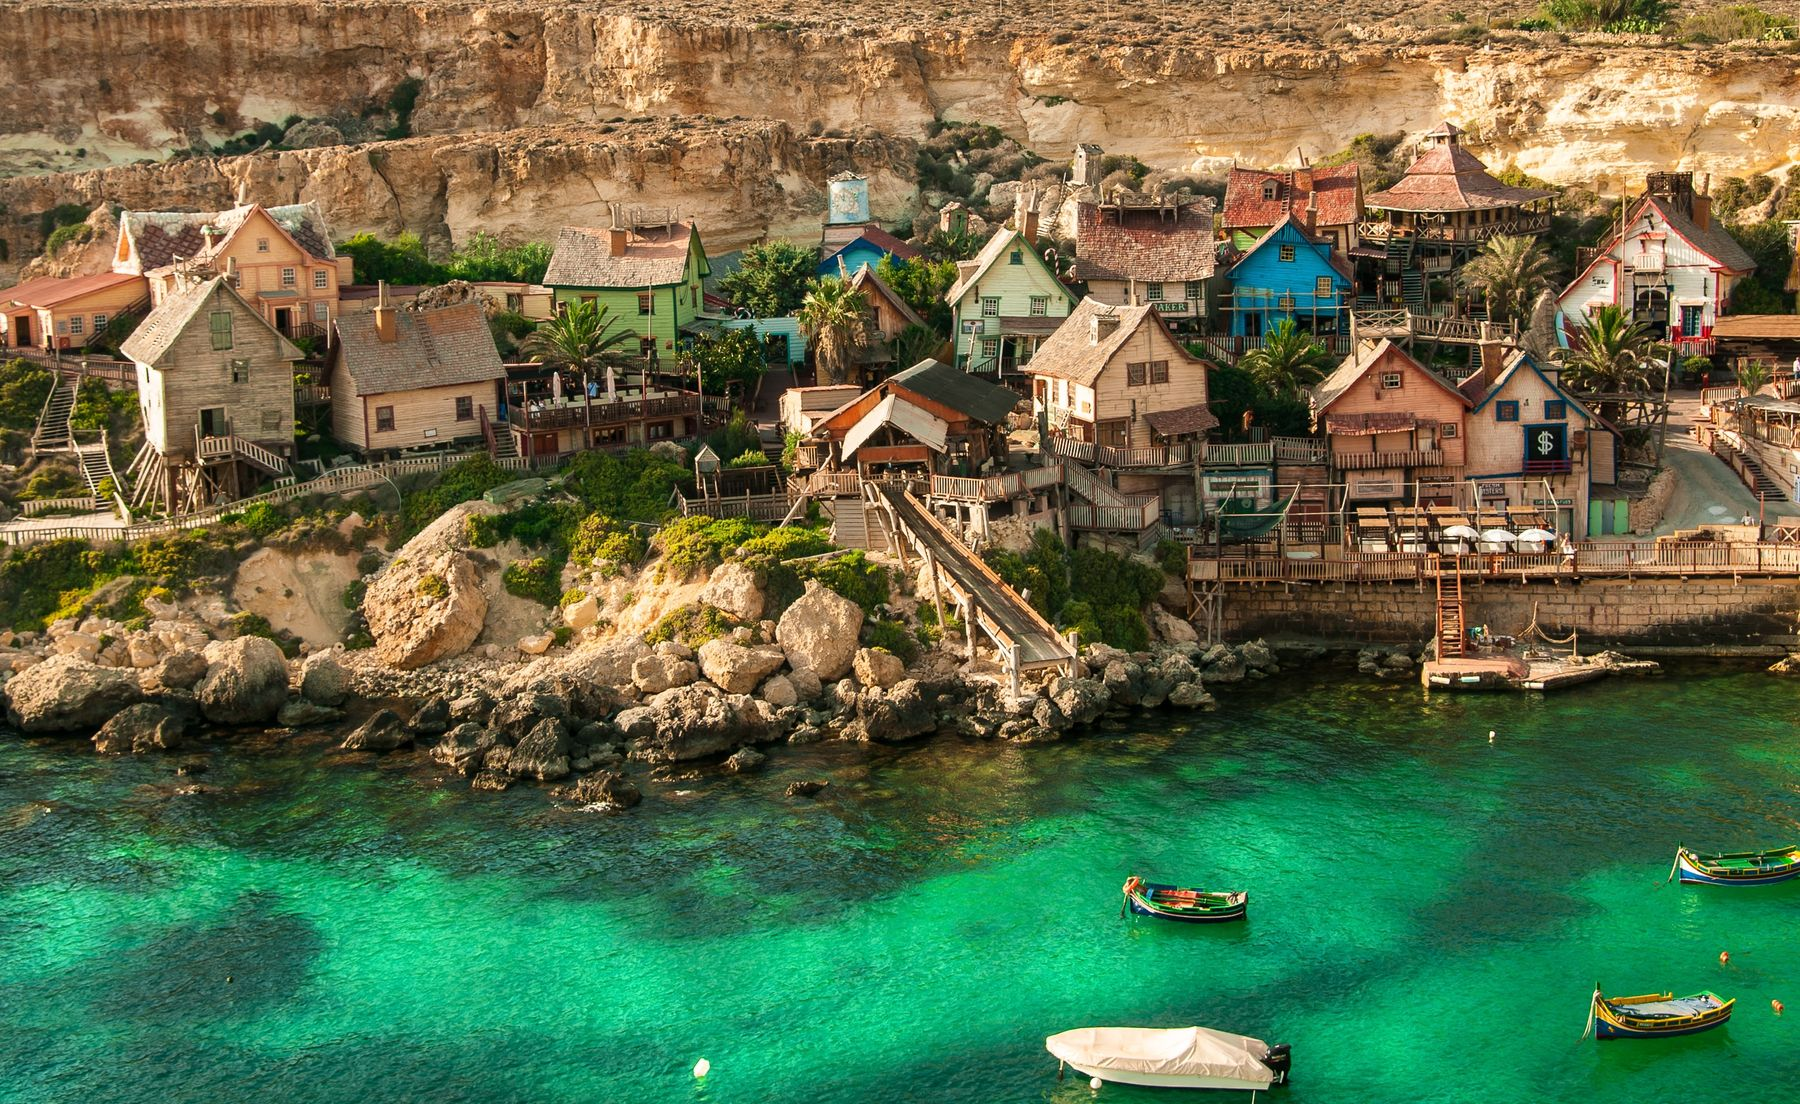 Find great flight deals to Malta and see the Popeye Village in Mellieha in Malta